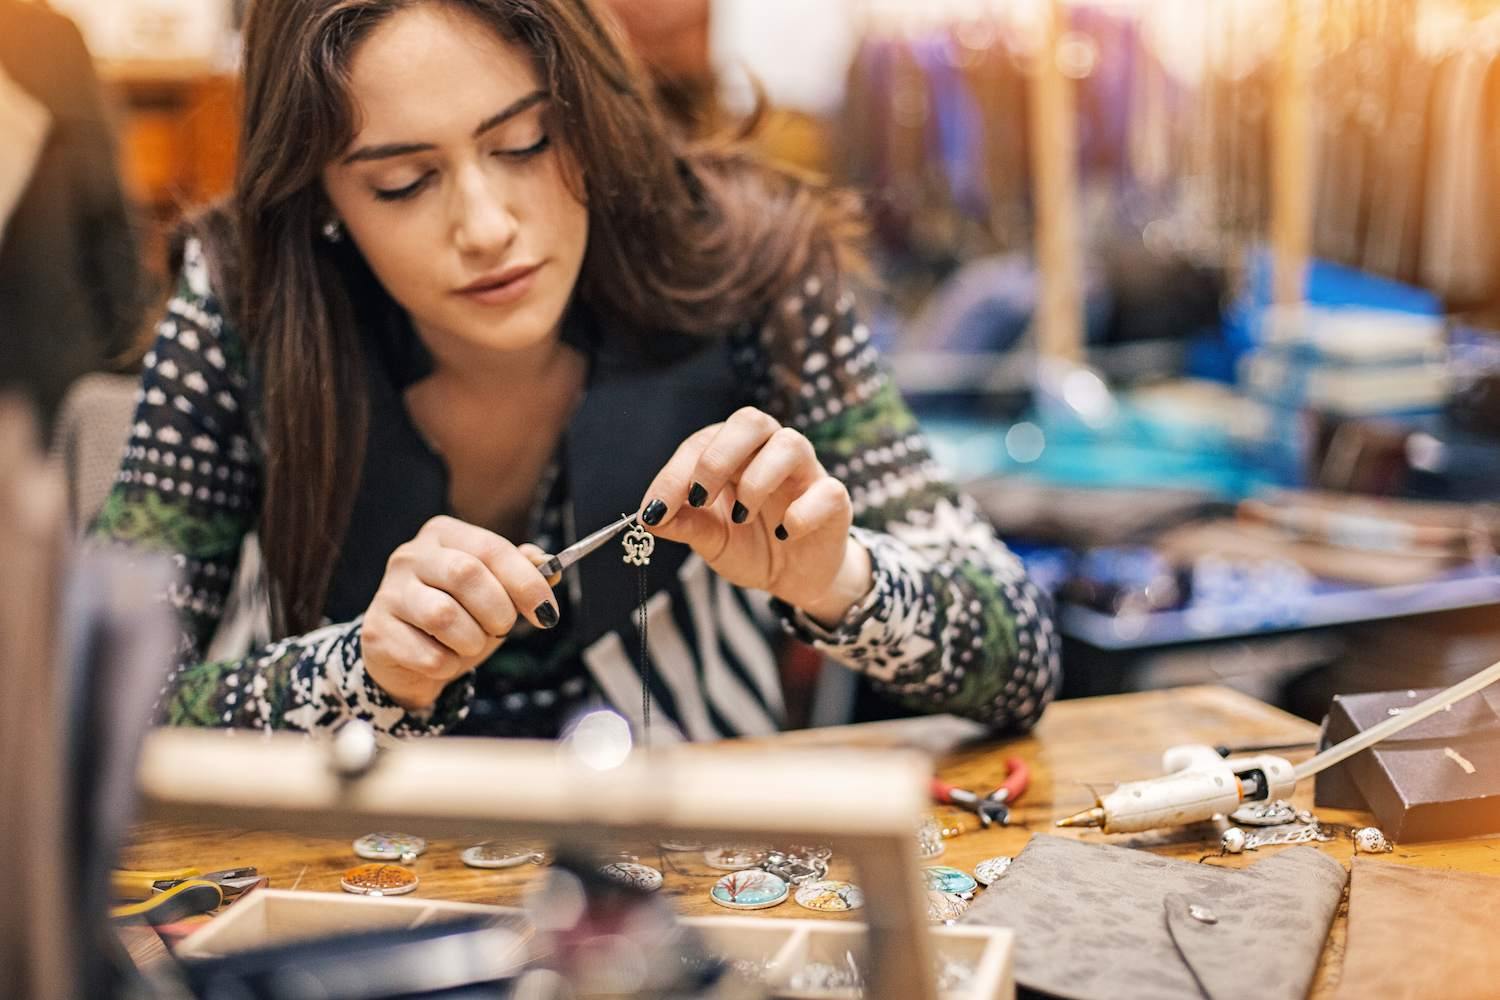 Jewelry designer working with metal and pliers in her studio